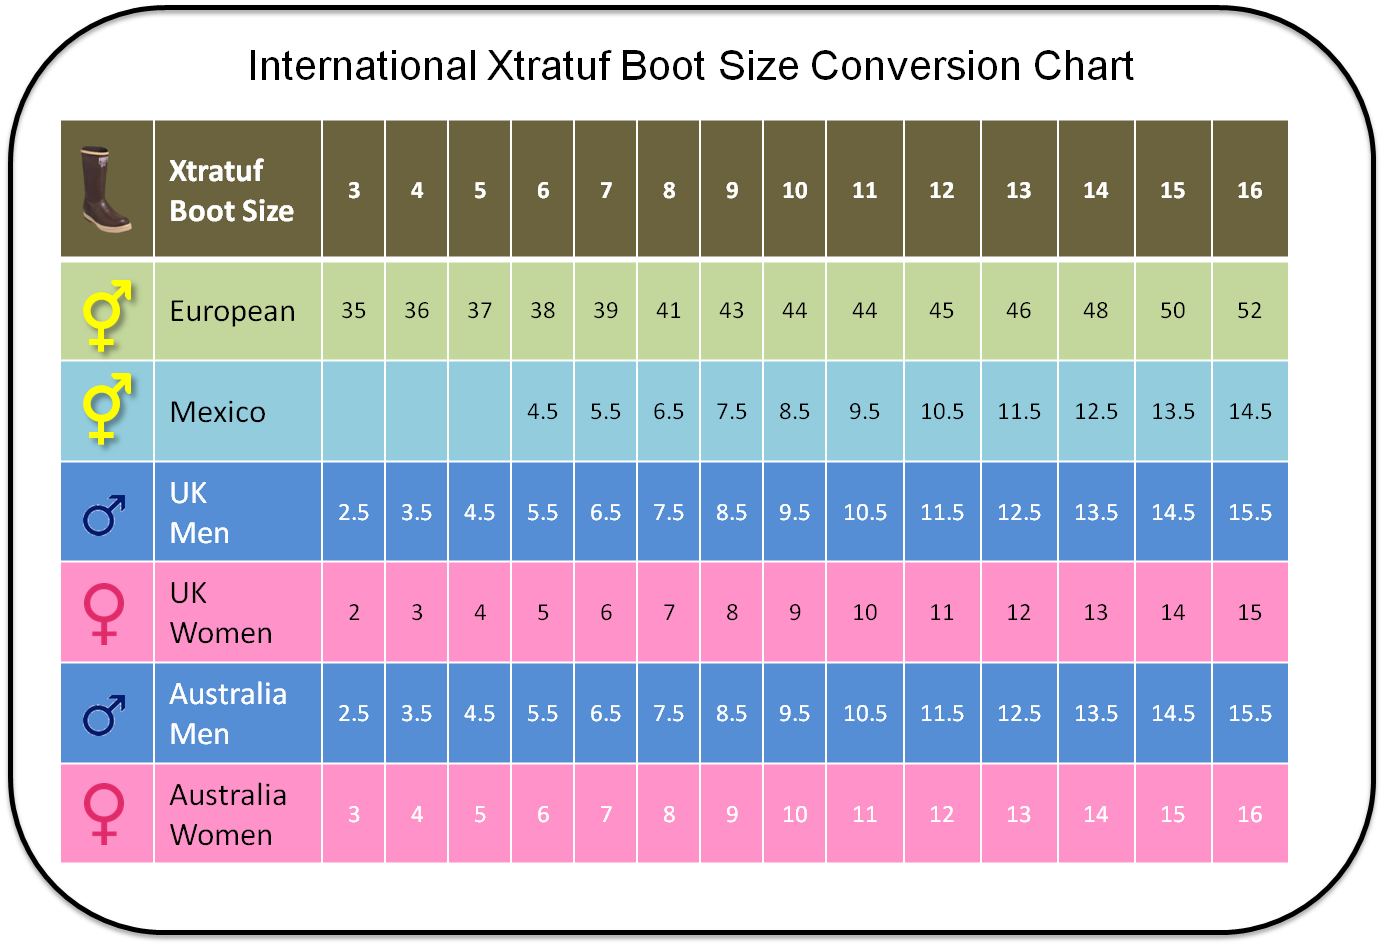 International Men and Women Xtratuf Boot Size Conversion Chart